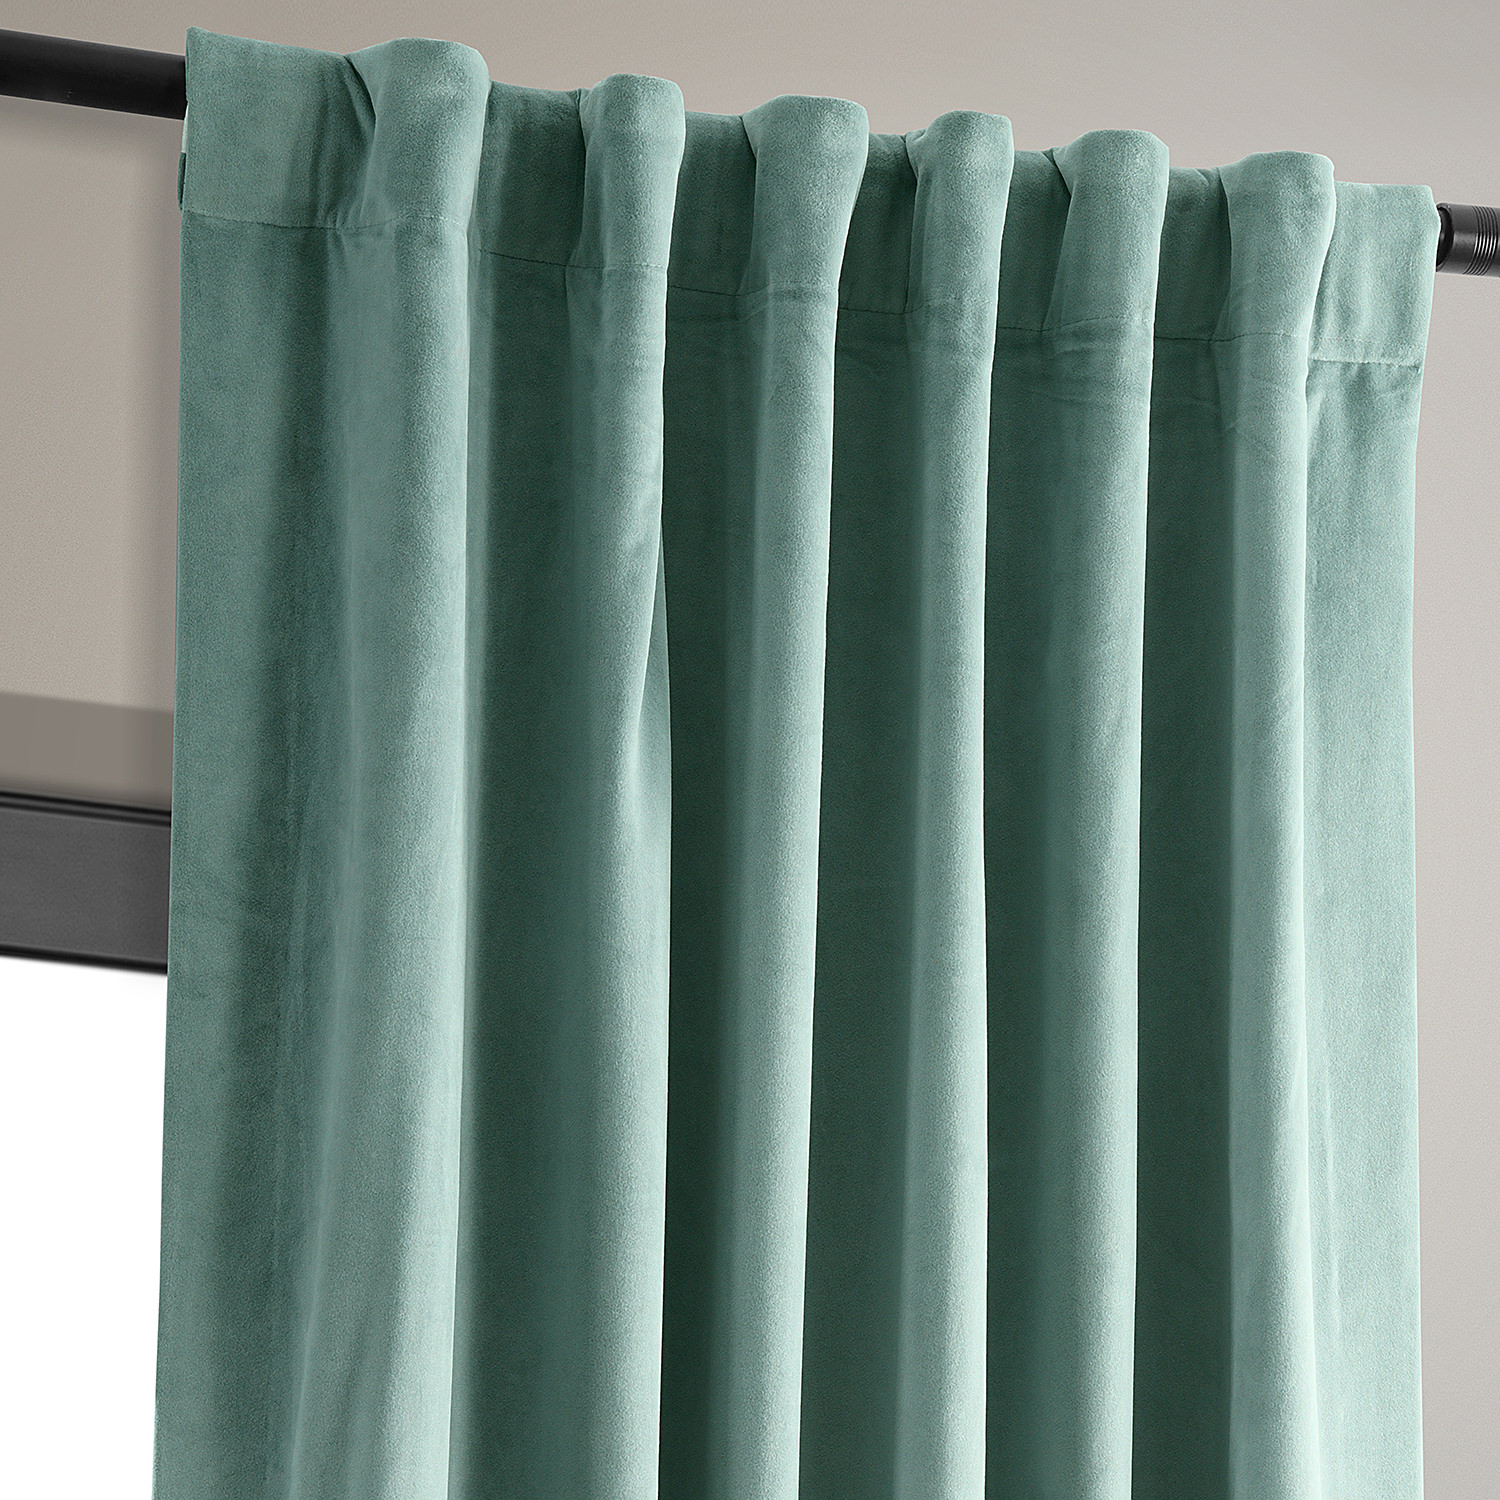 Signature Aqua Mist Blackout Velvet Curtains Drapes